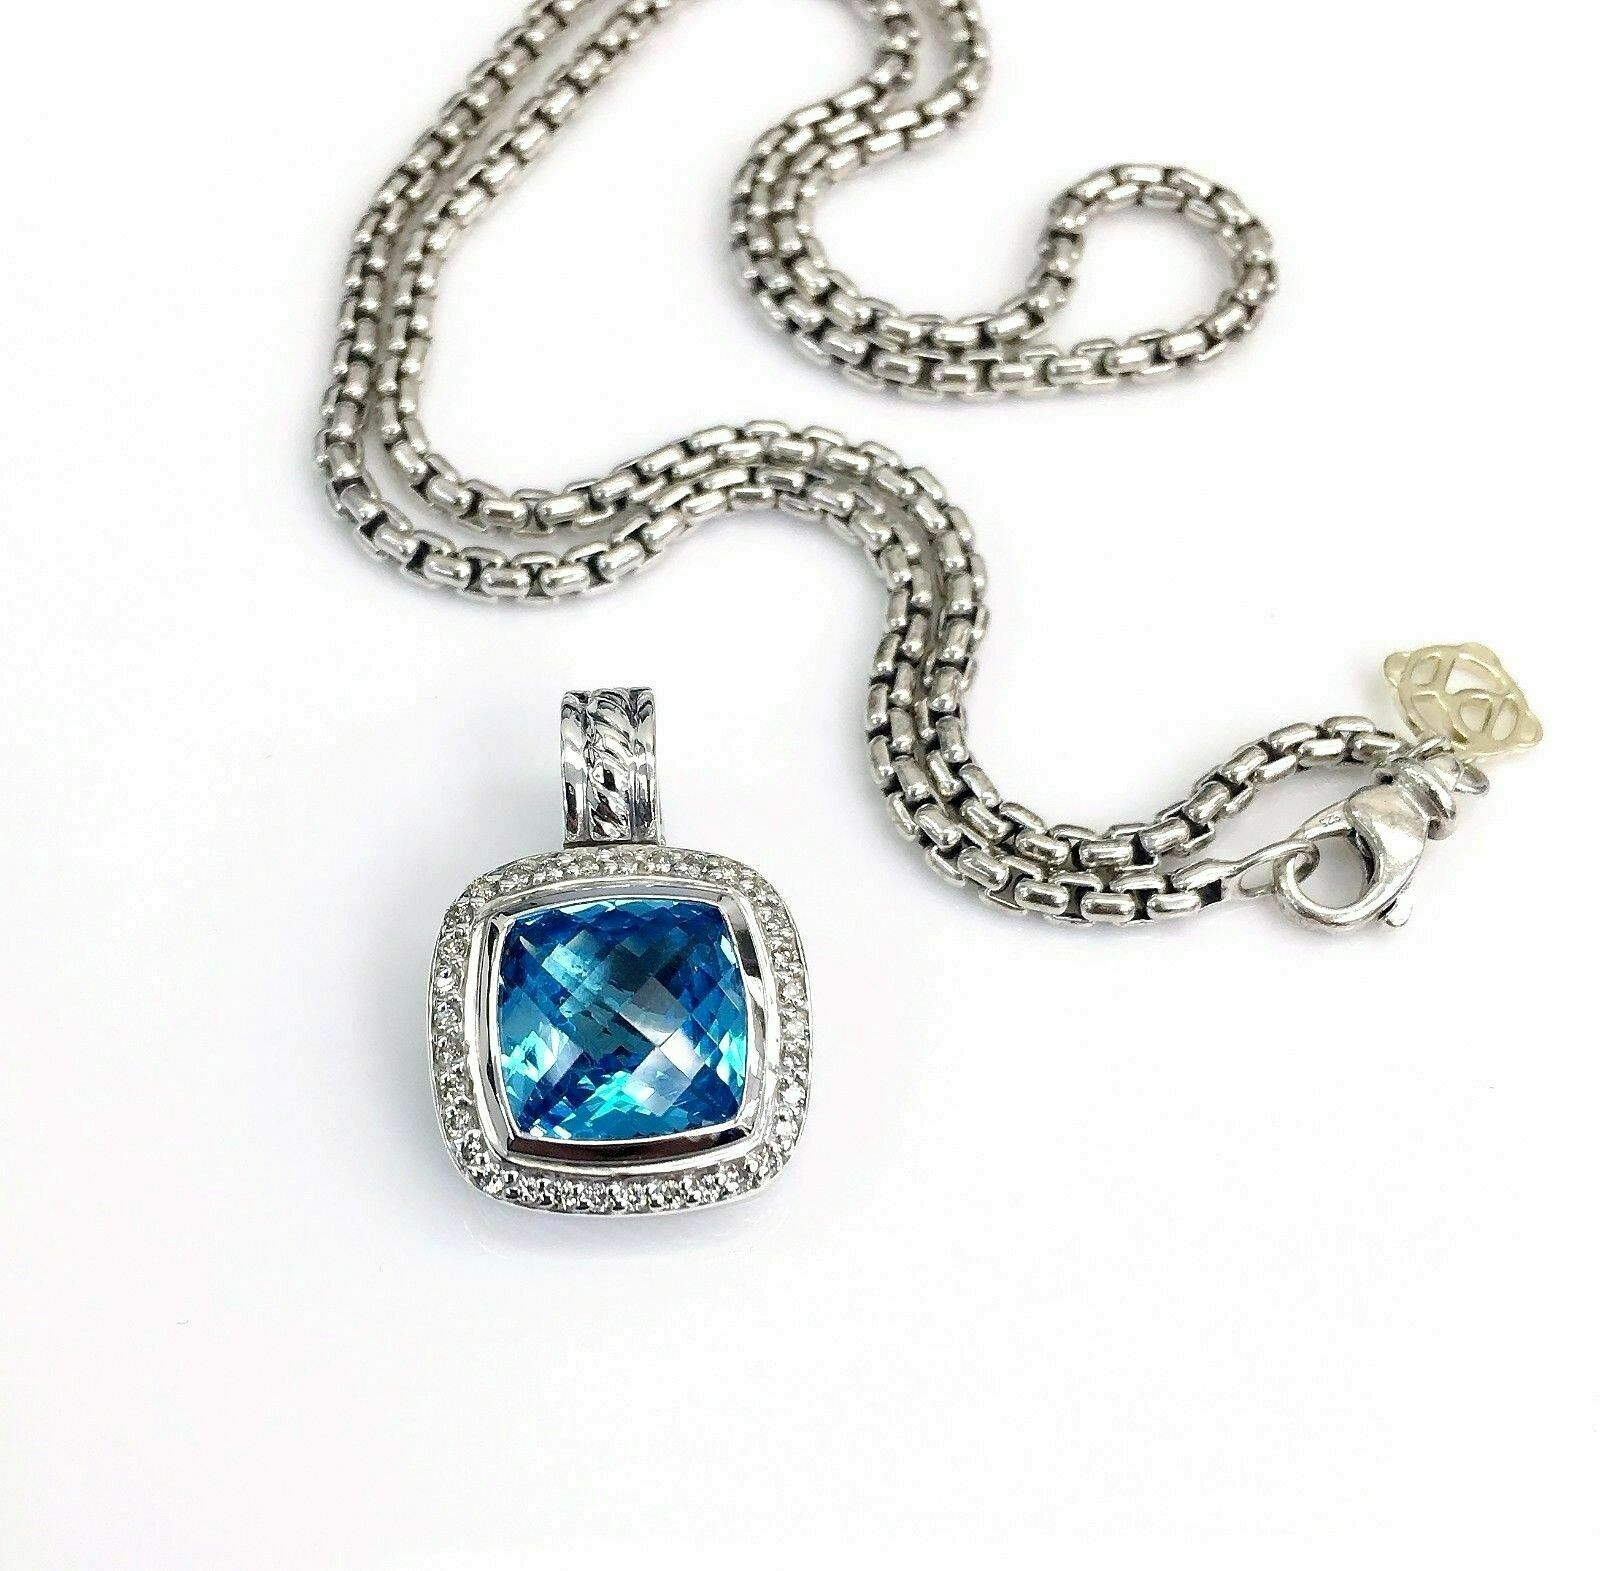 David Yurman Albion Diamond and Topaz Pendant with DY 14K and Sterlin Chain 16in